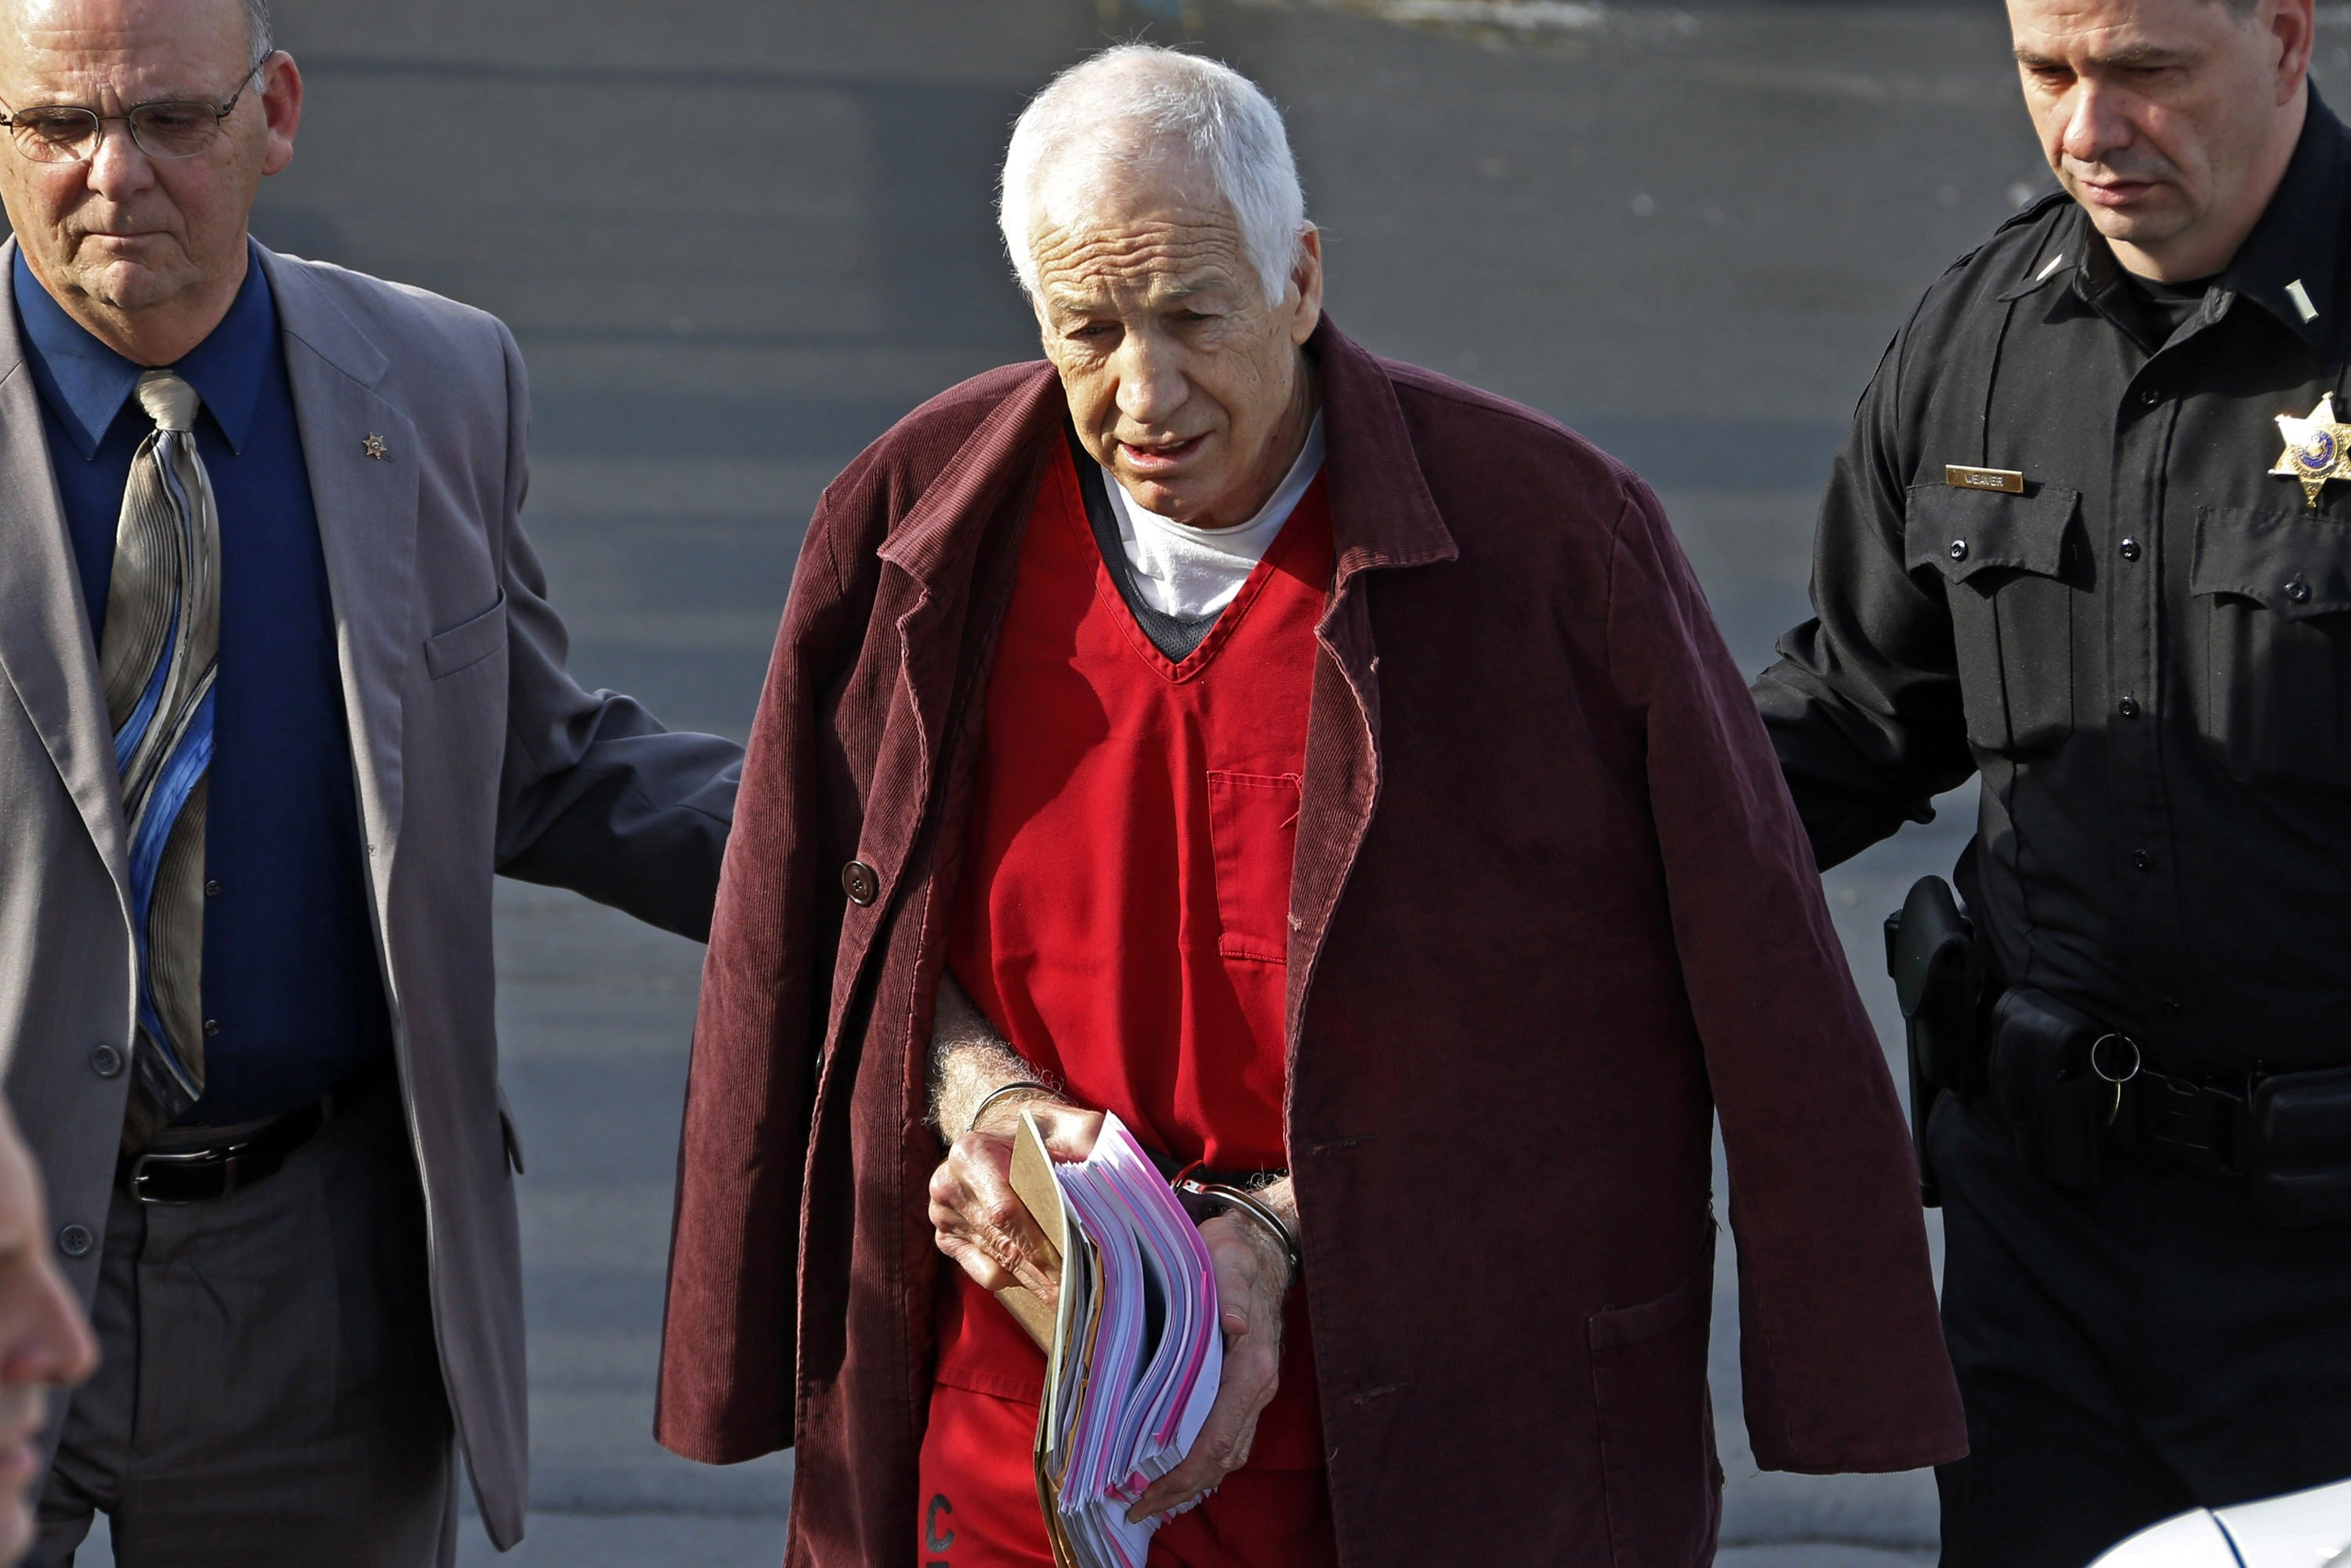 Former Penn State University assistant football coach Jerry Sandusky, center, leaves the Centre County Courthouse after attending a post-sentence motion hearing in Bellefonte, Pa., Jan. 10, 2013.